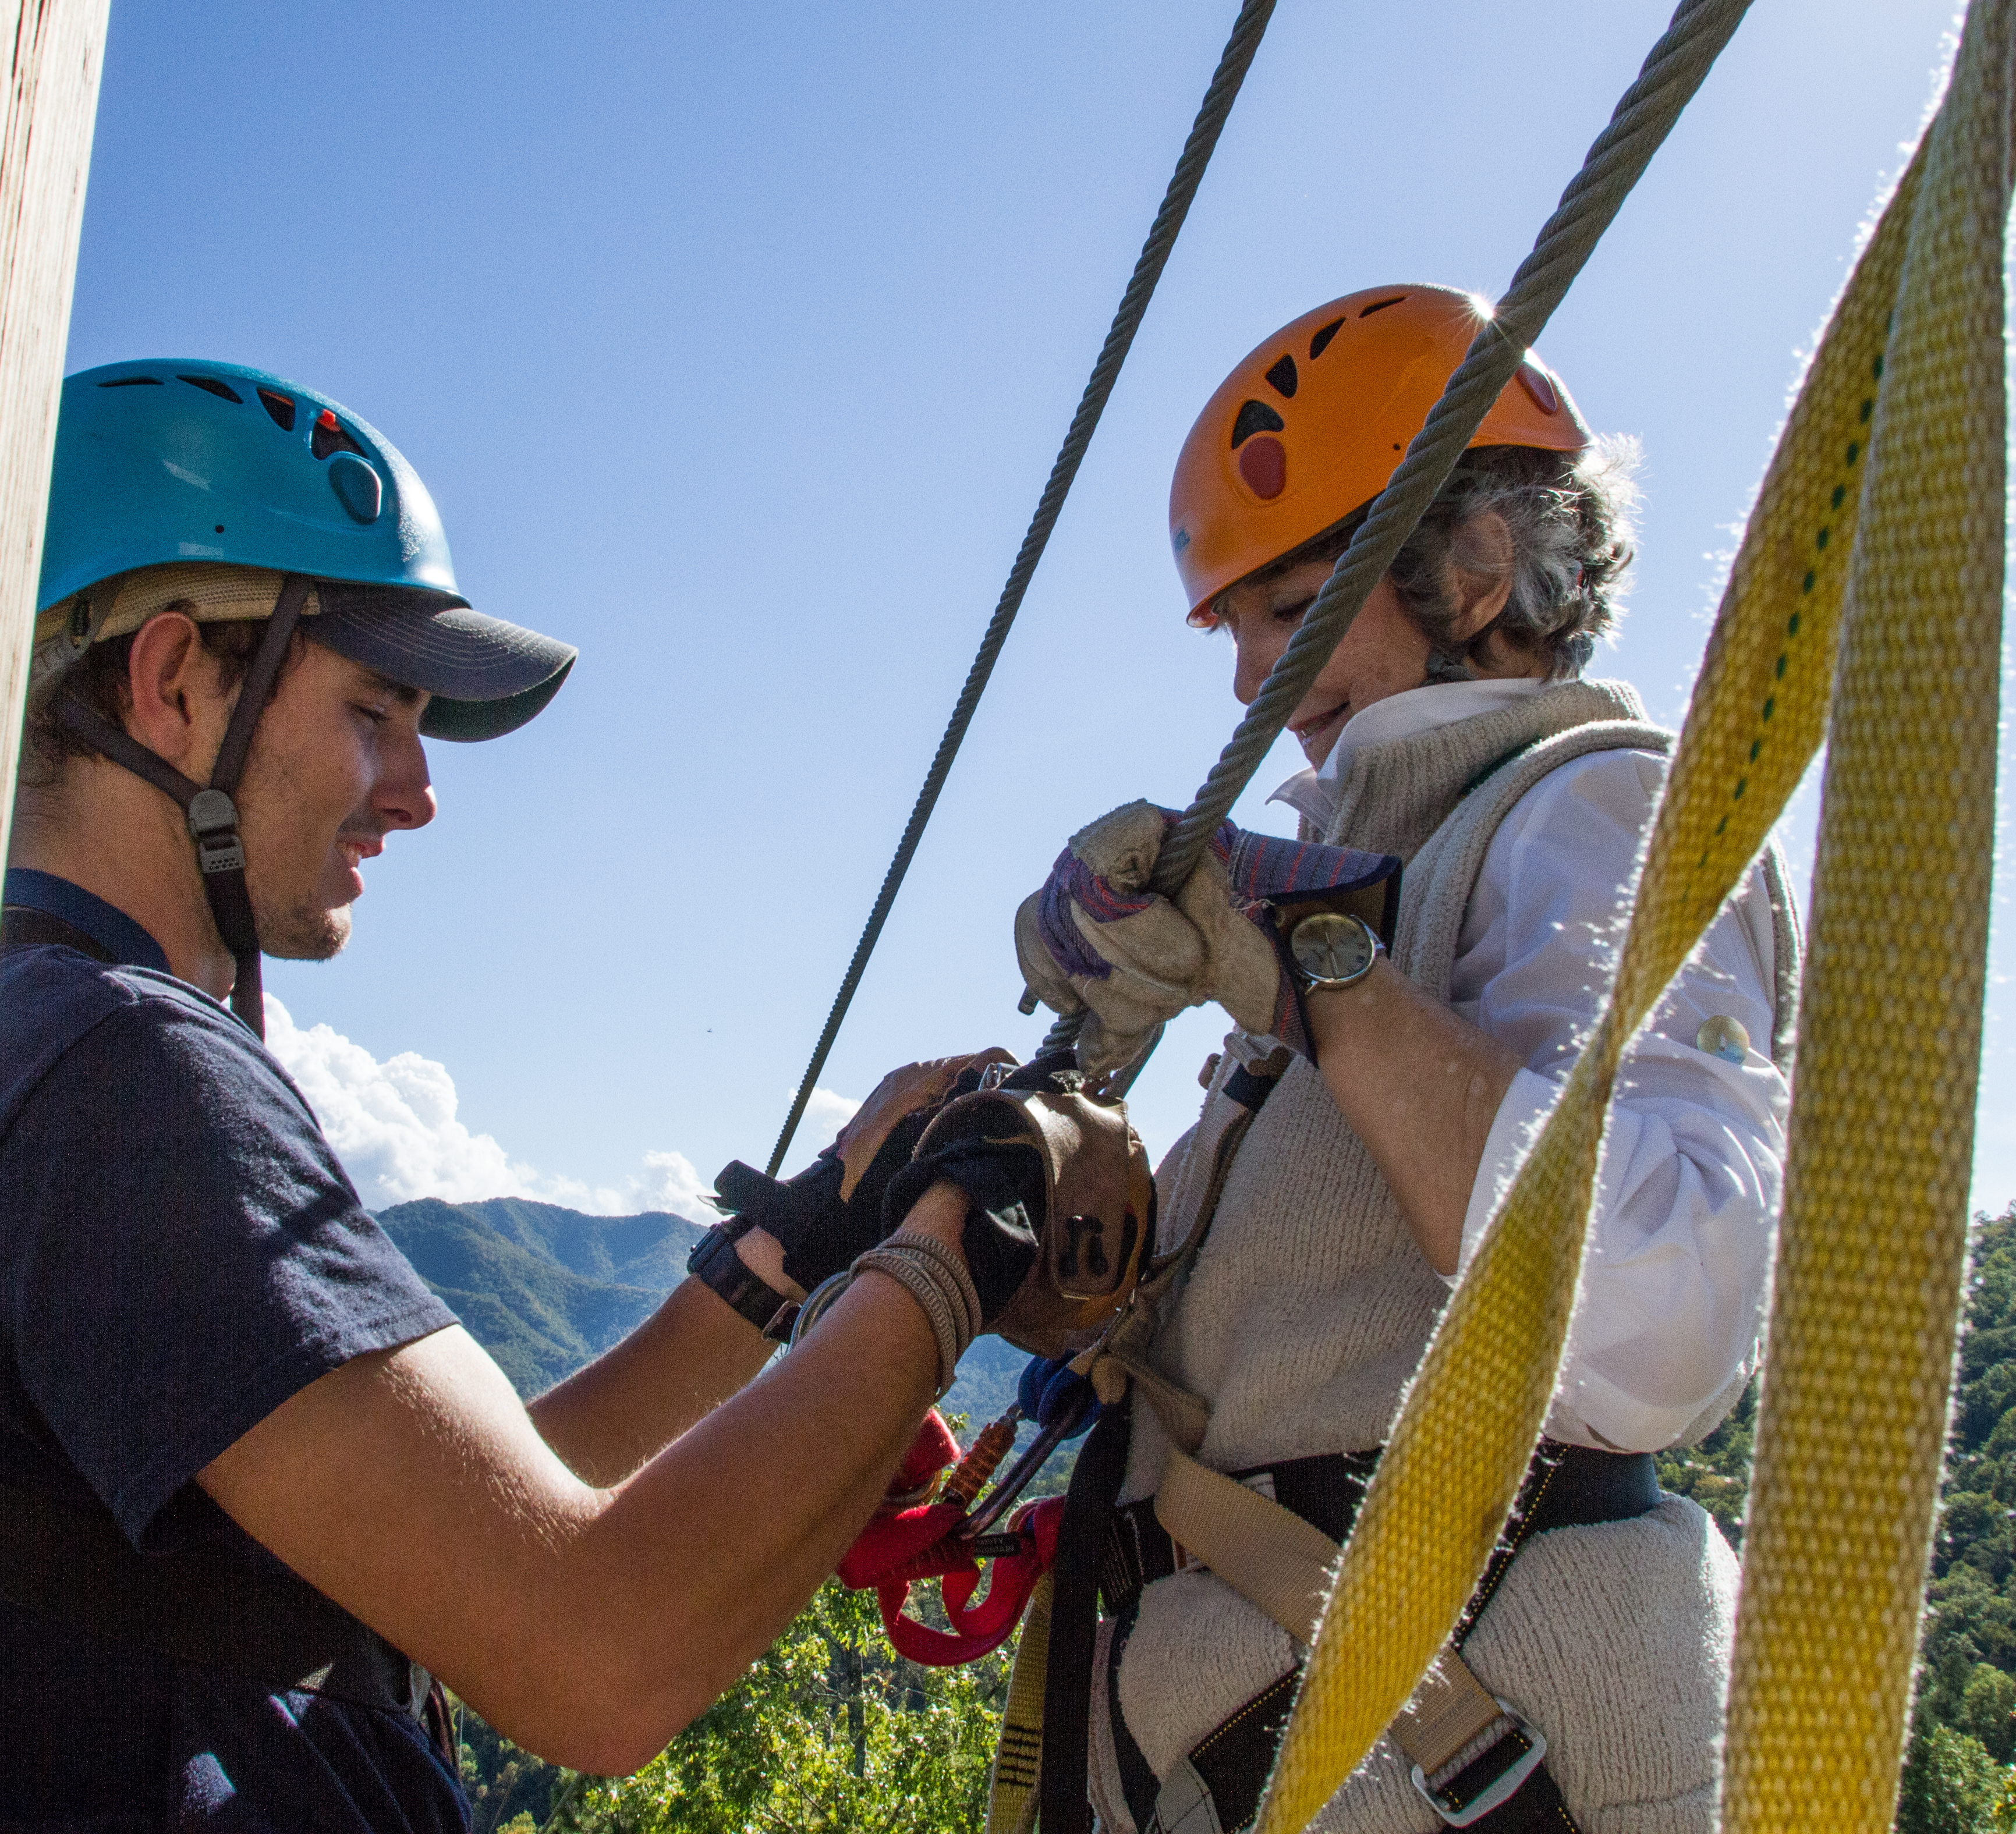 NOC's Mountaintop Zip Line Tour